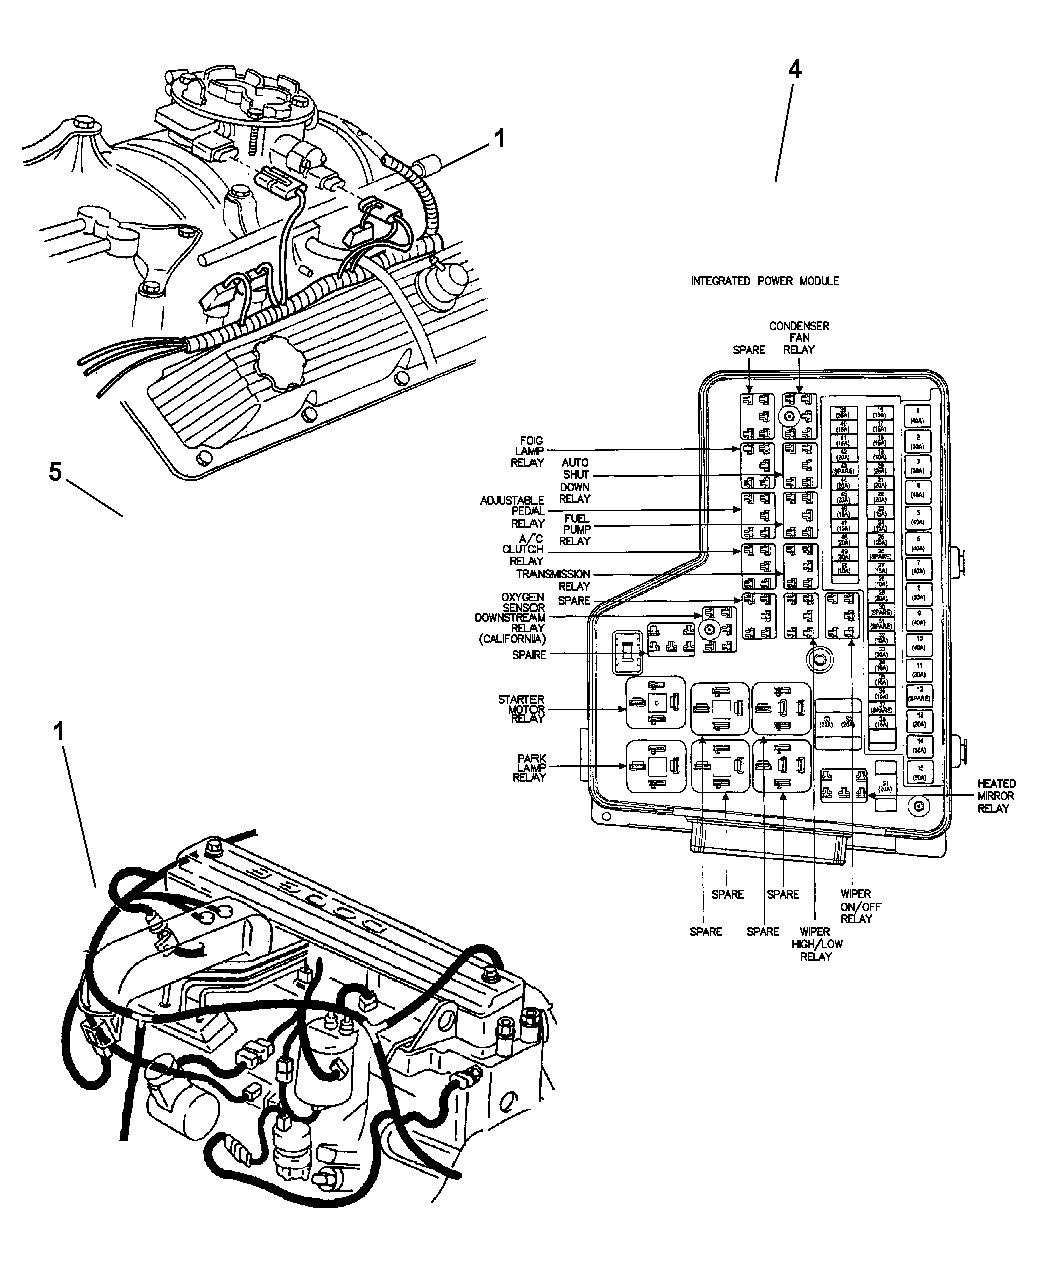 Oem Mopar Parts Diagrams 2004 Dodge Ram 2500 • Wiring